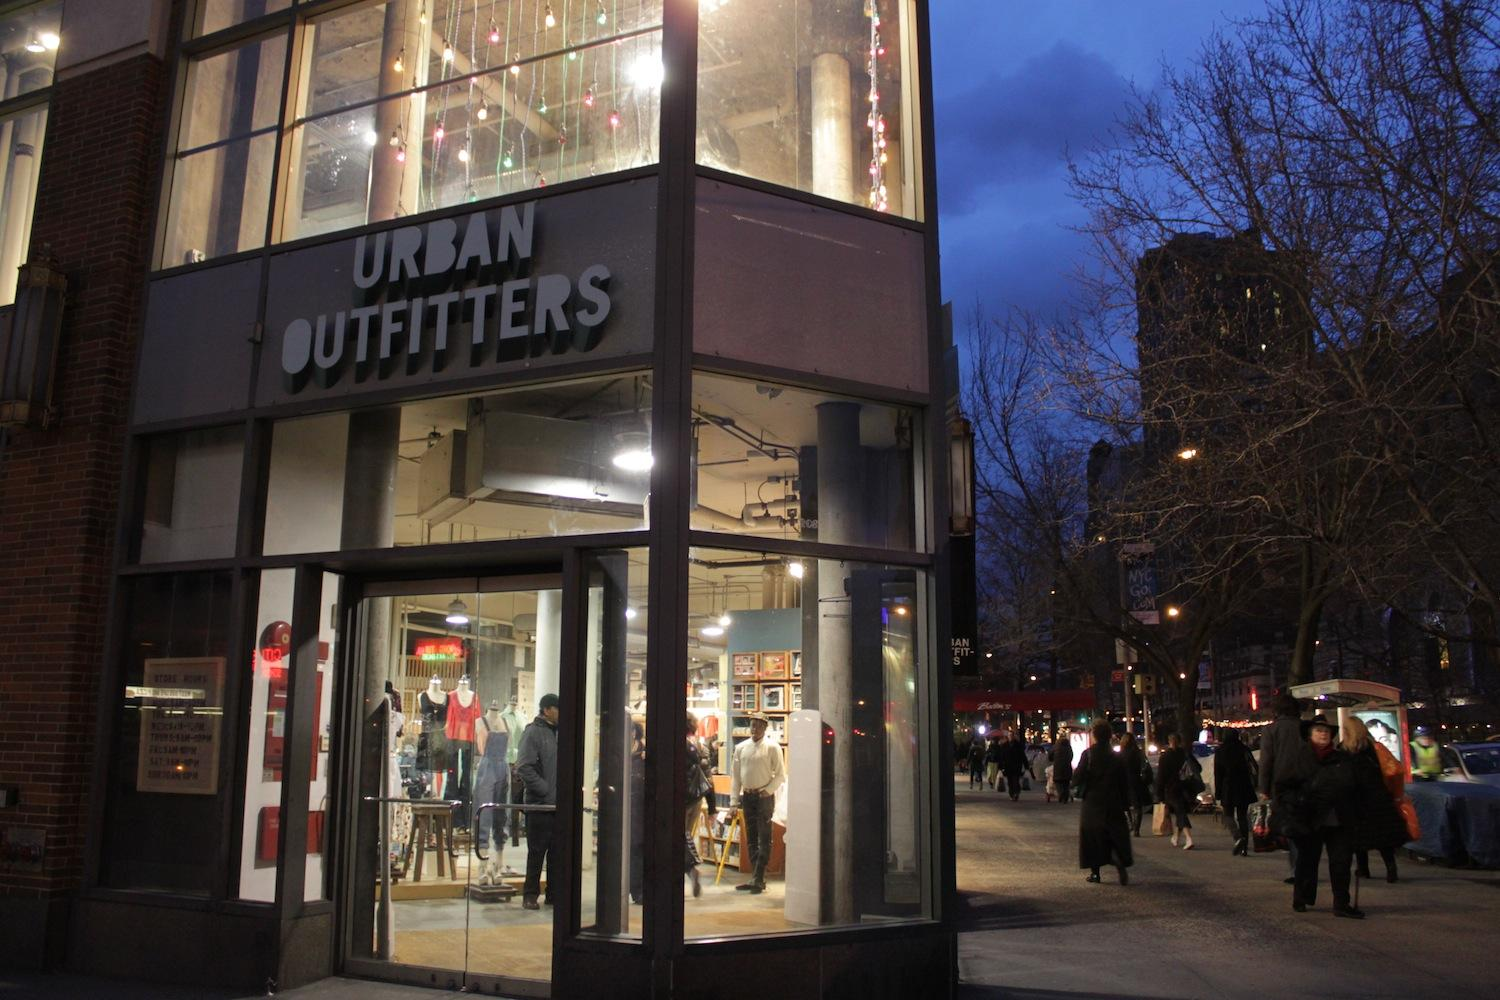 Urban Outfitters is a clothing store which sells vintage, retro